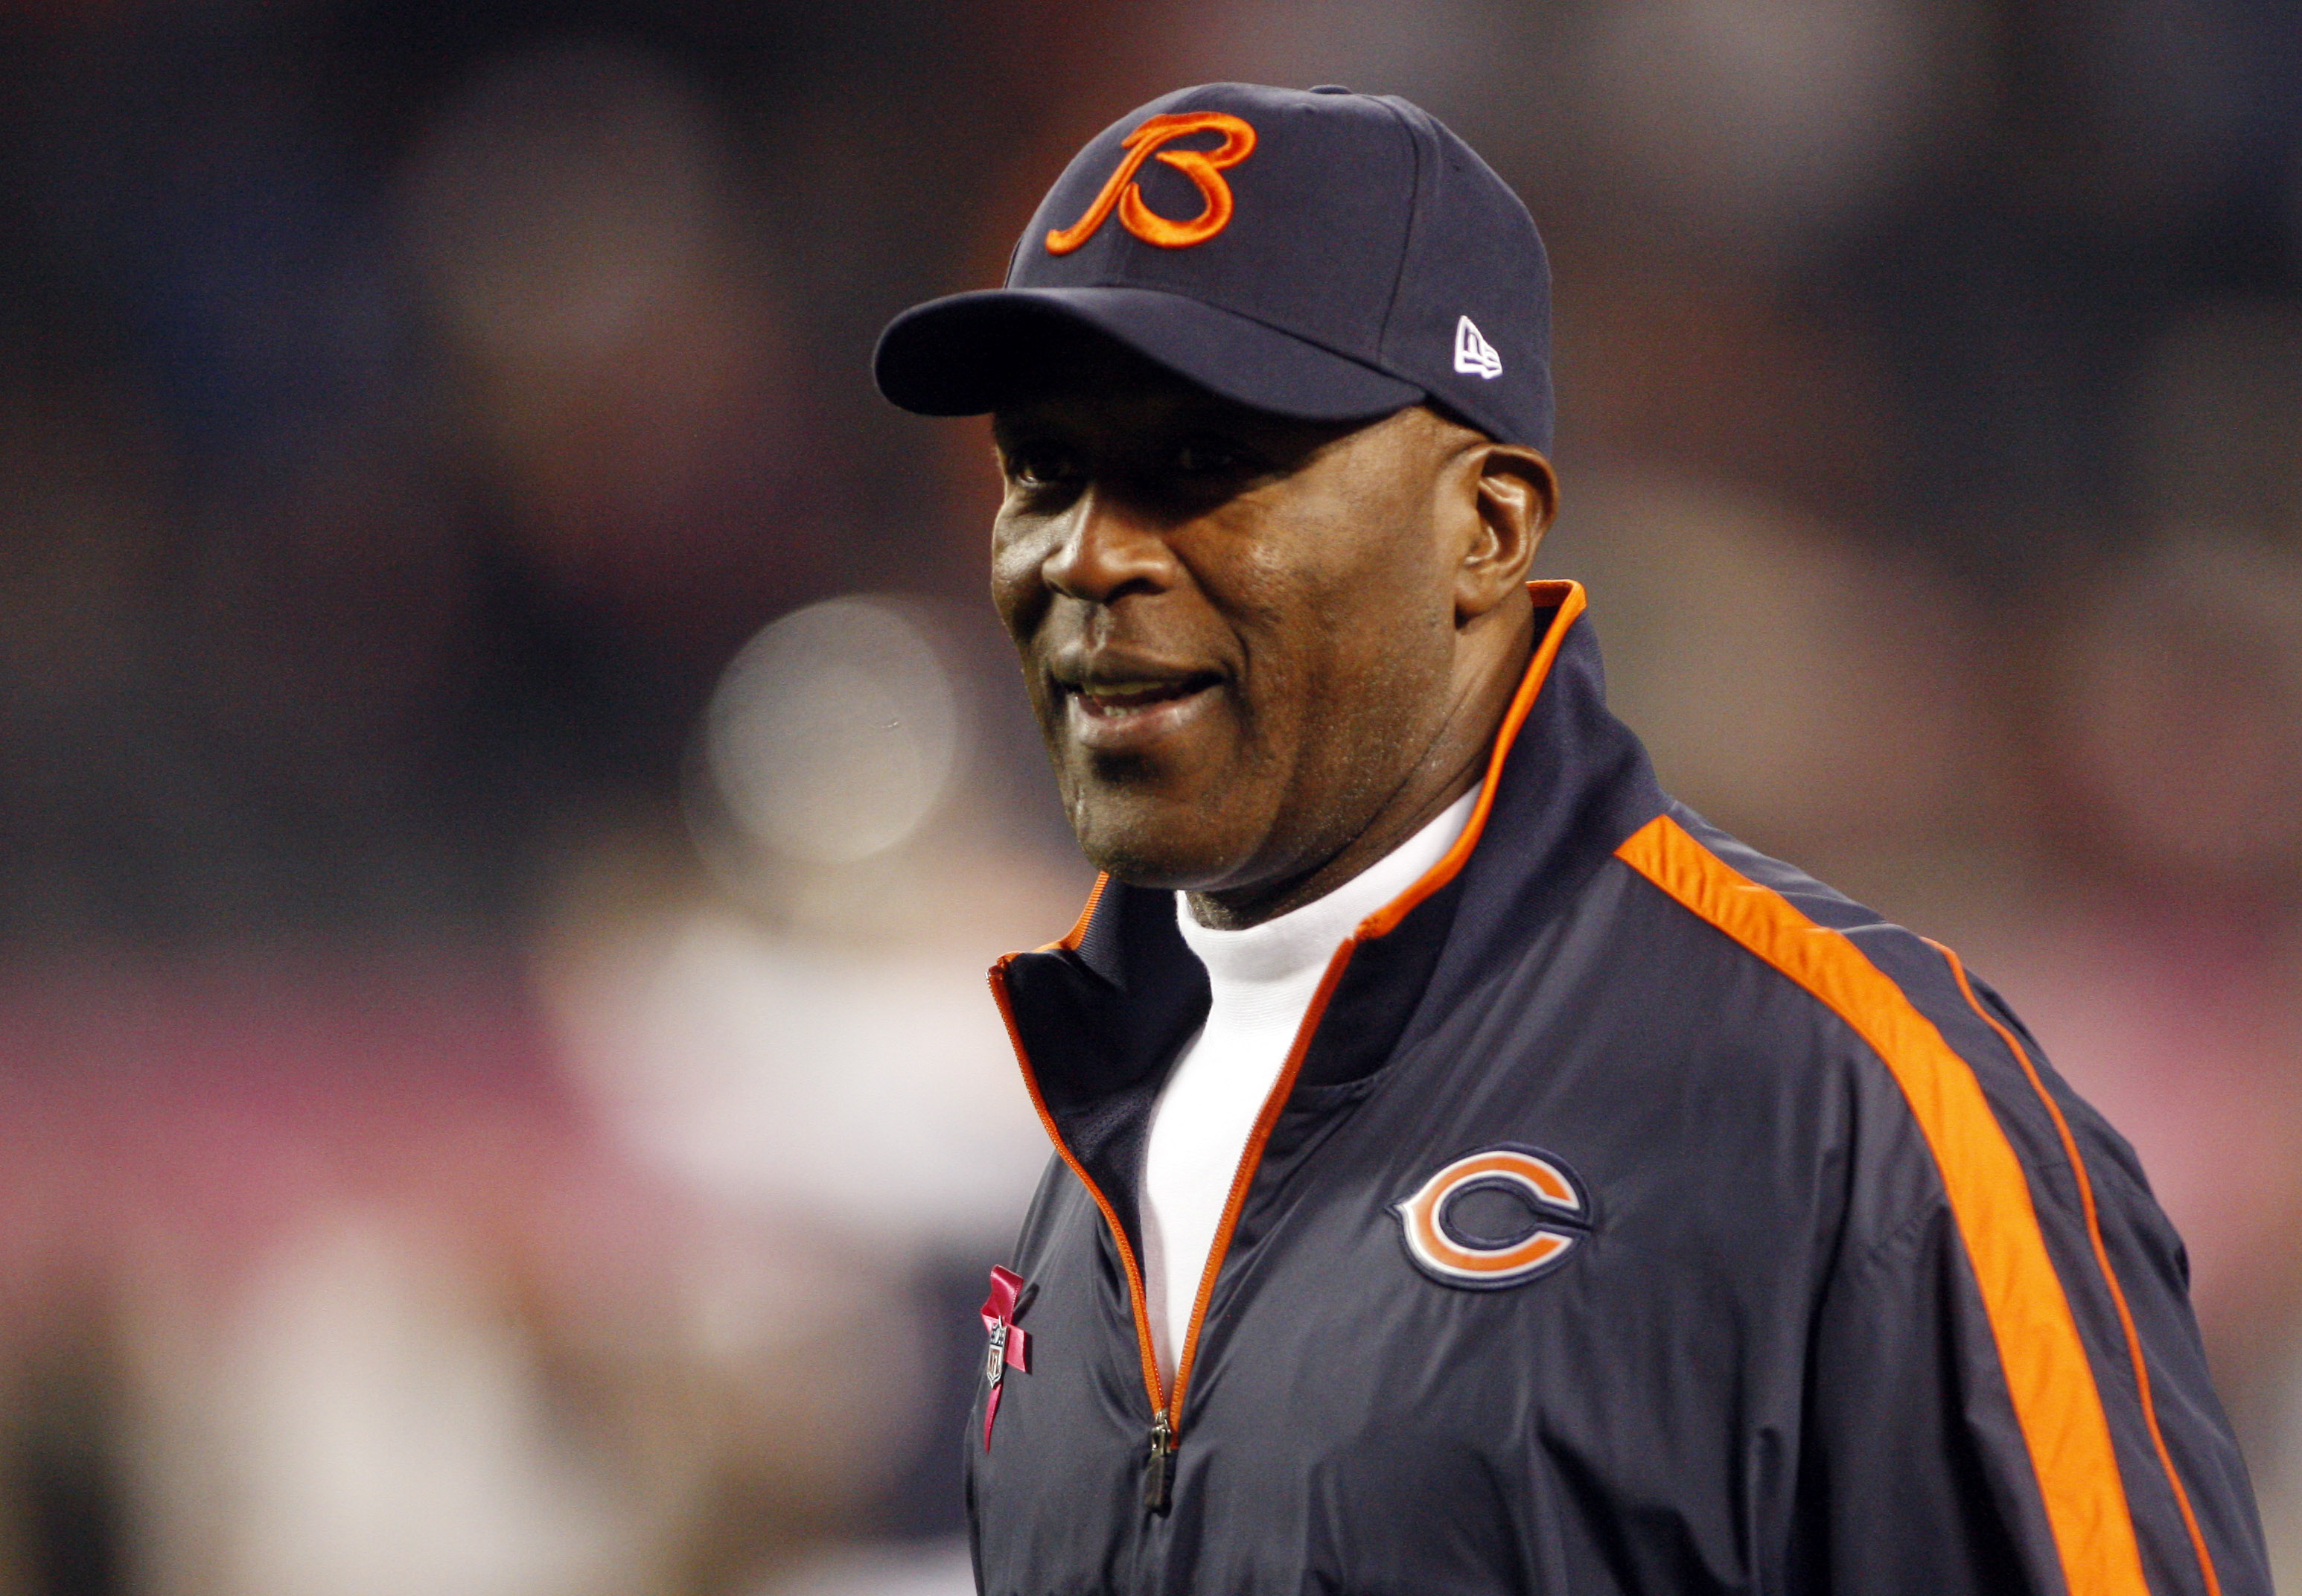 Lovie Smith's Son Hired By IMG Worldwide; Brings Chicago Bears Coaches As Clients